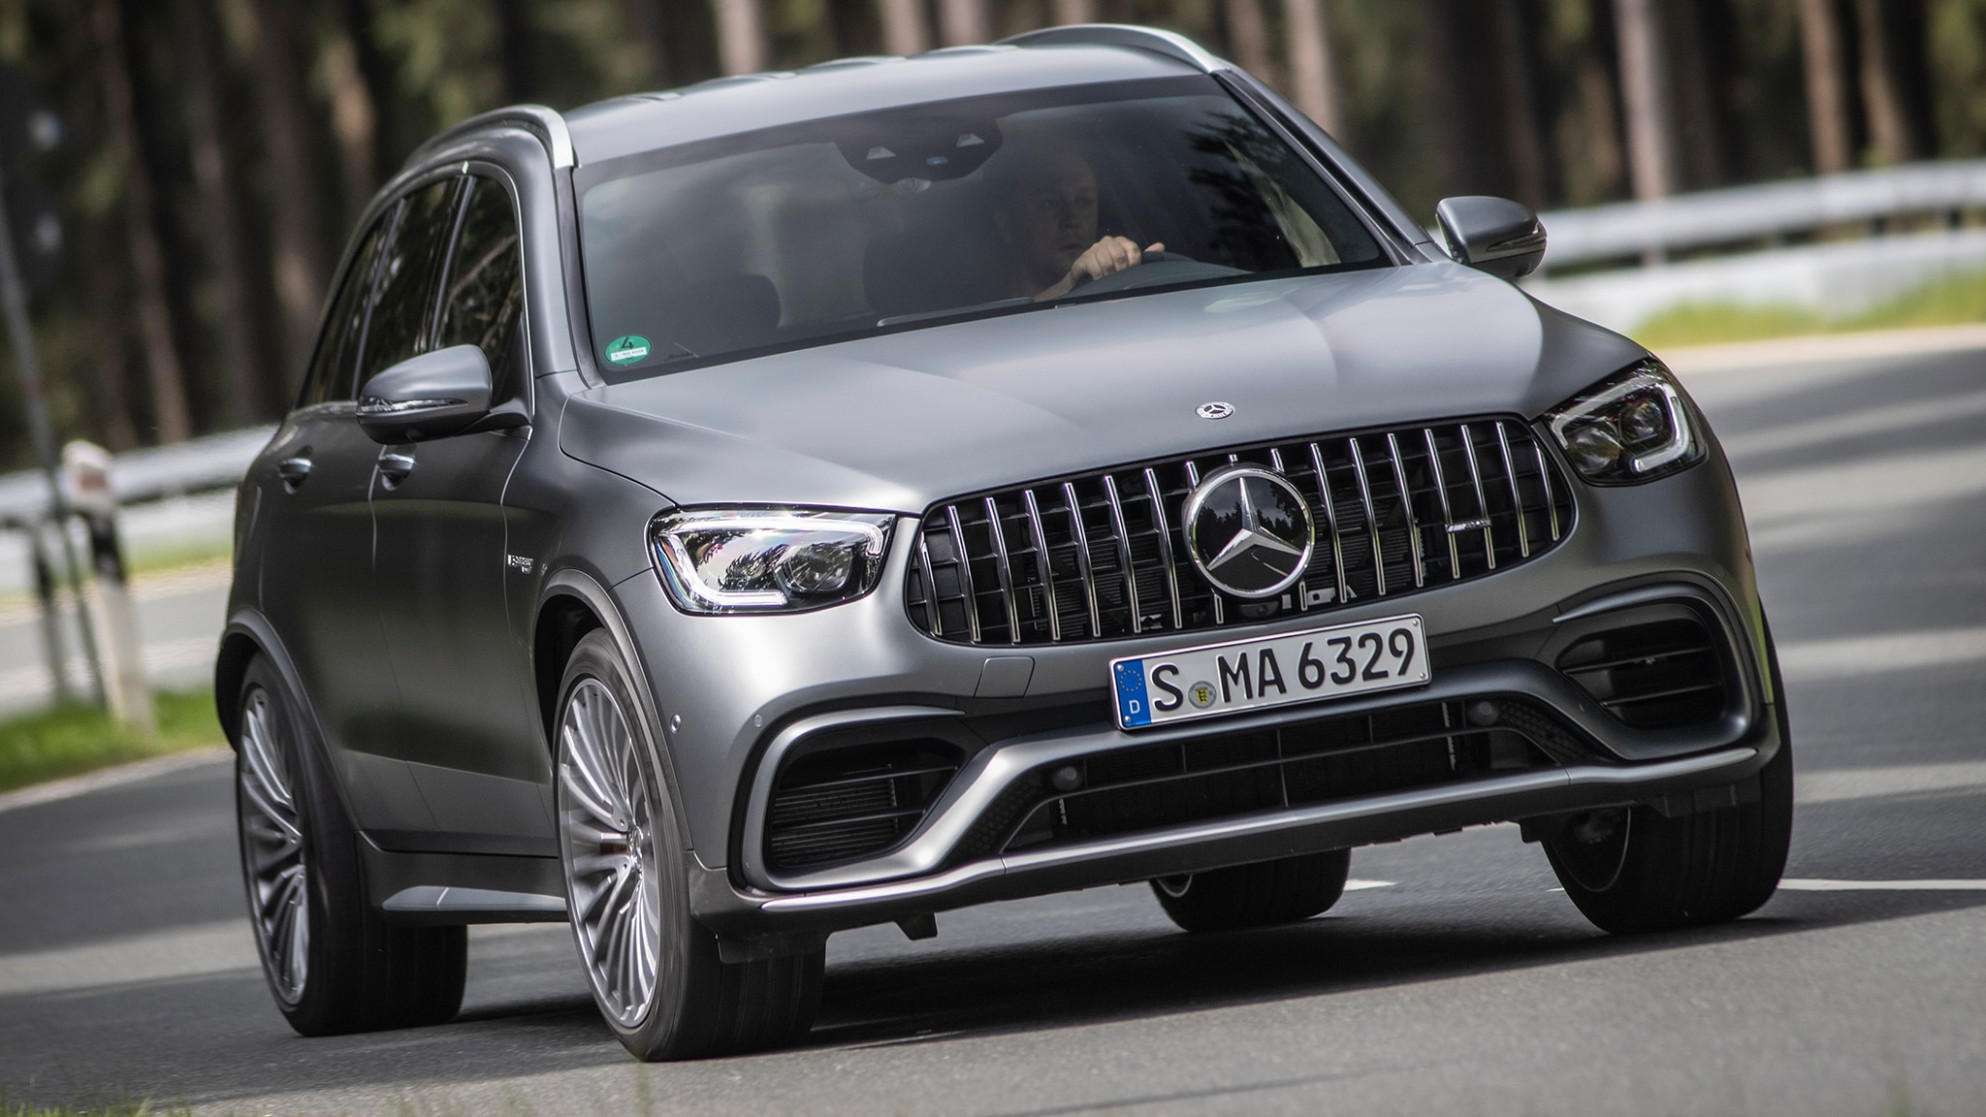 9 Mercedes-Benz GLC 9 and GLC 9 Review: Don't Mess It Up